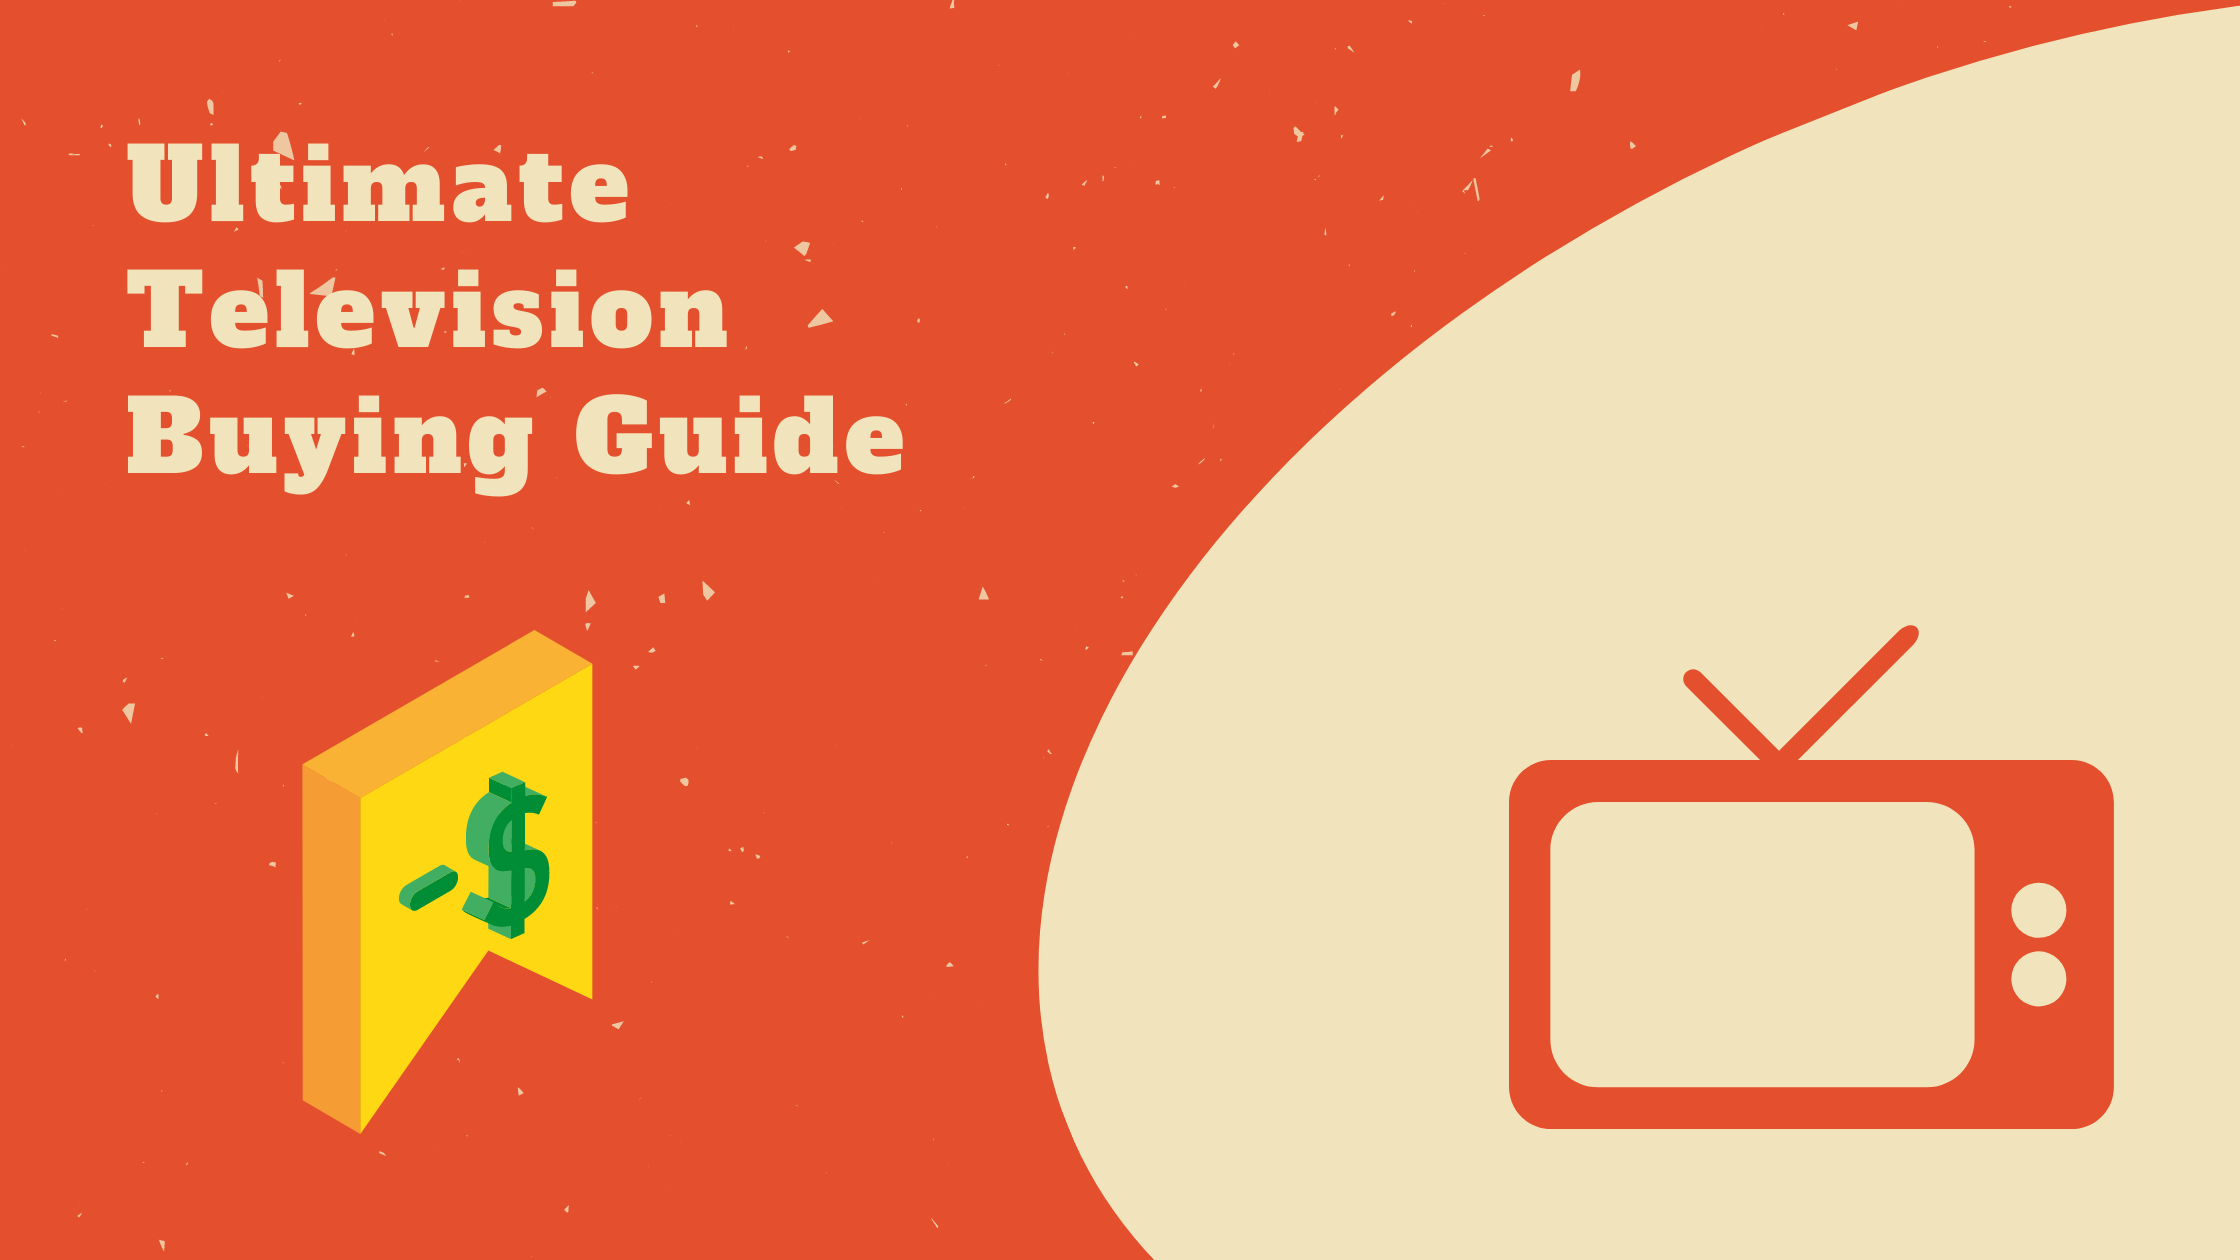 Ultimate Television Buying Guide